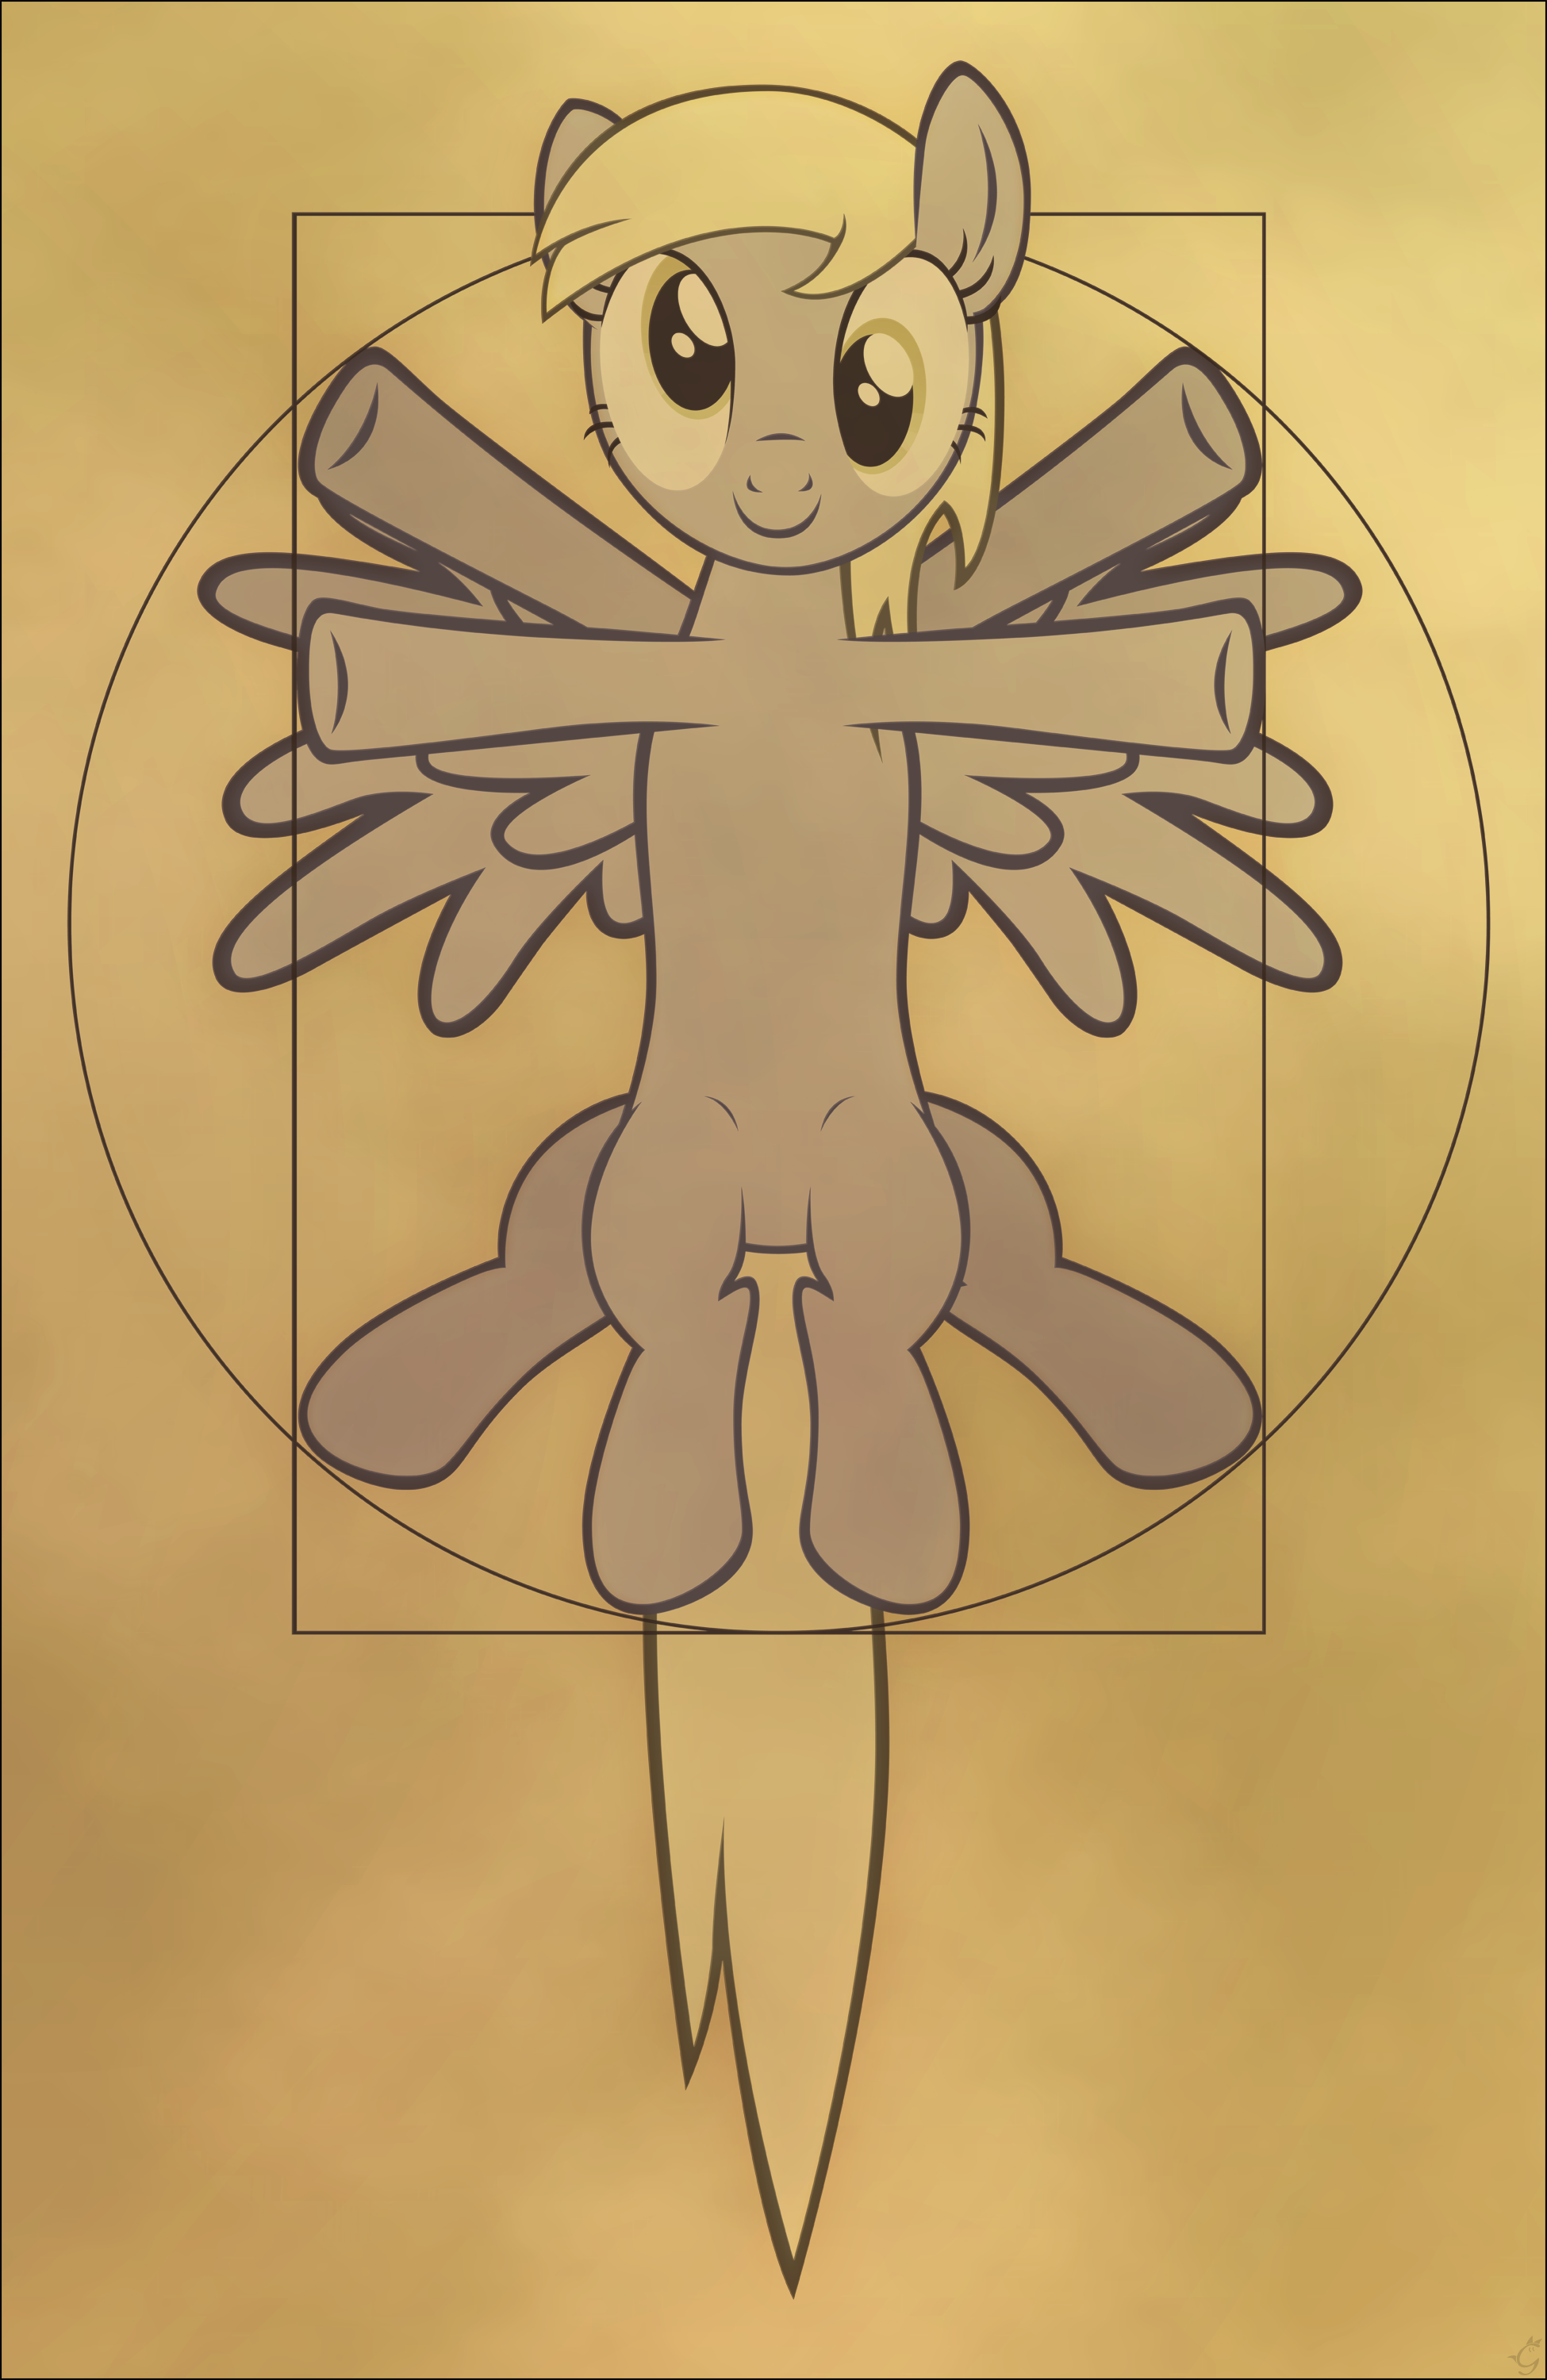 e621 2012 absurd_res derpy_hooves_(mlp) equine feathered_wings feathers female feral friendship_is_magic grey_feathers hi_res looking_at_viewer mammal my_little_pony pegasus solo stinkehund vitruvian_man wings